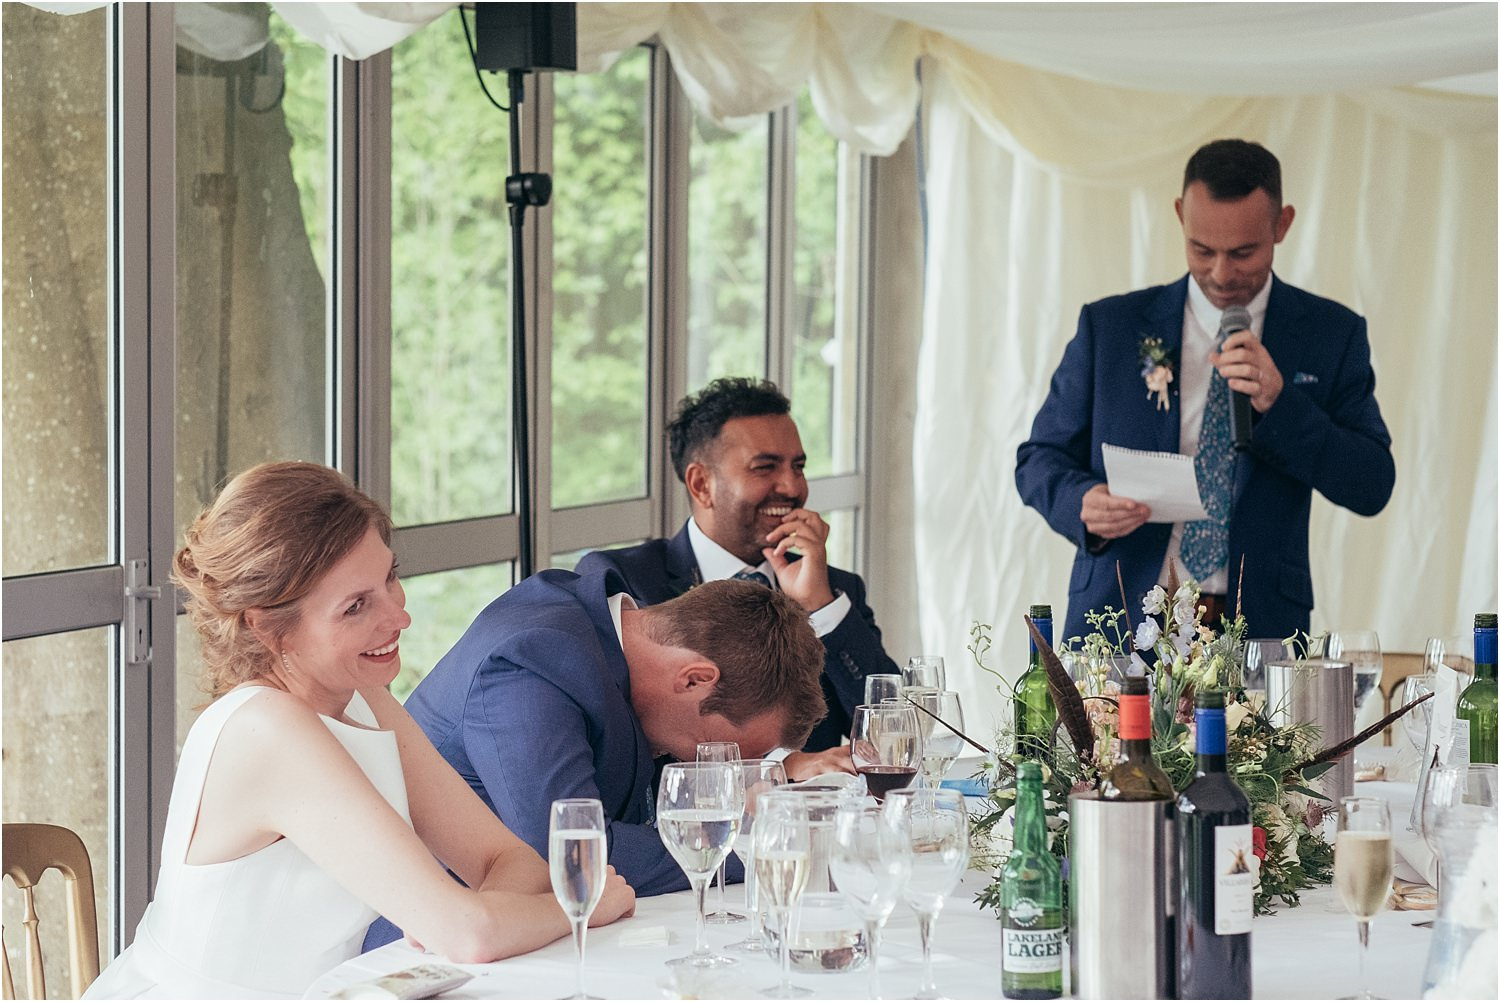 Groom's reaction to best mans's speech at Inn of Whitewell wedding